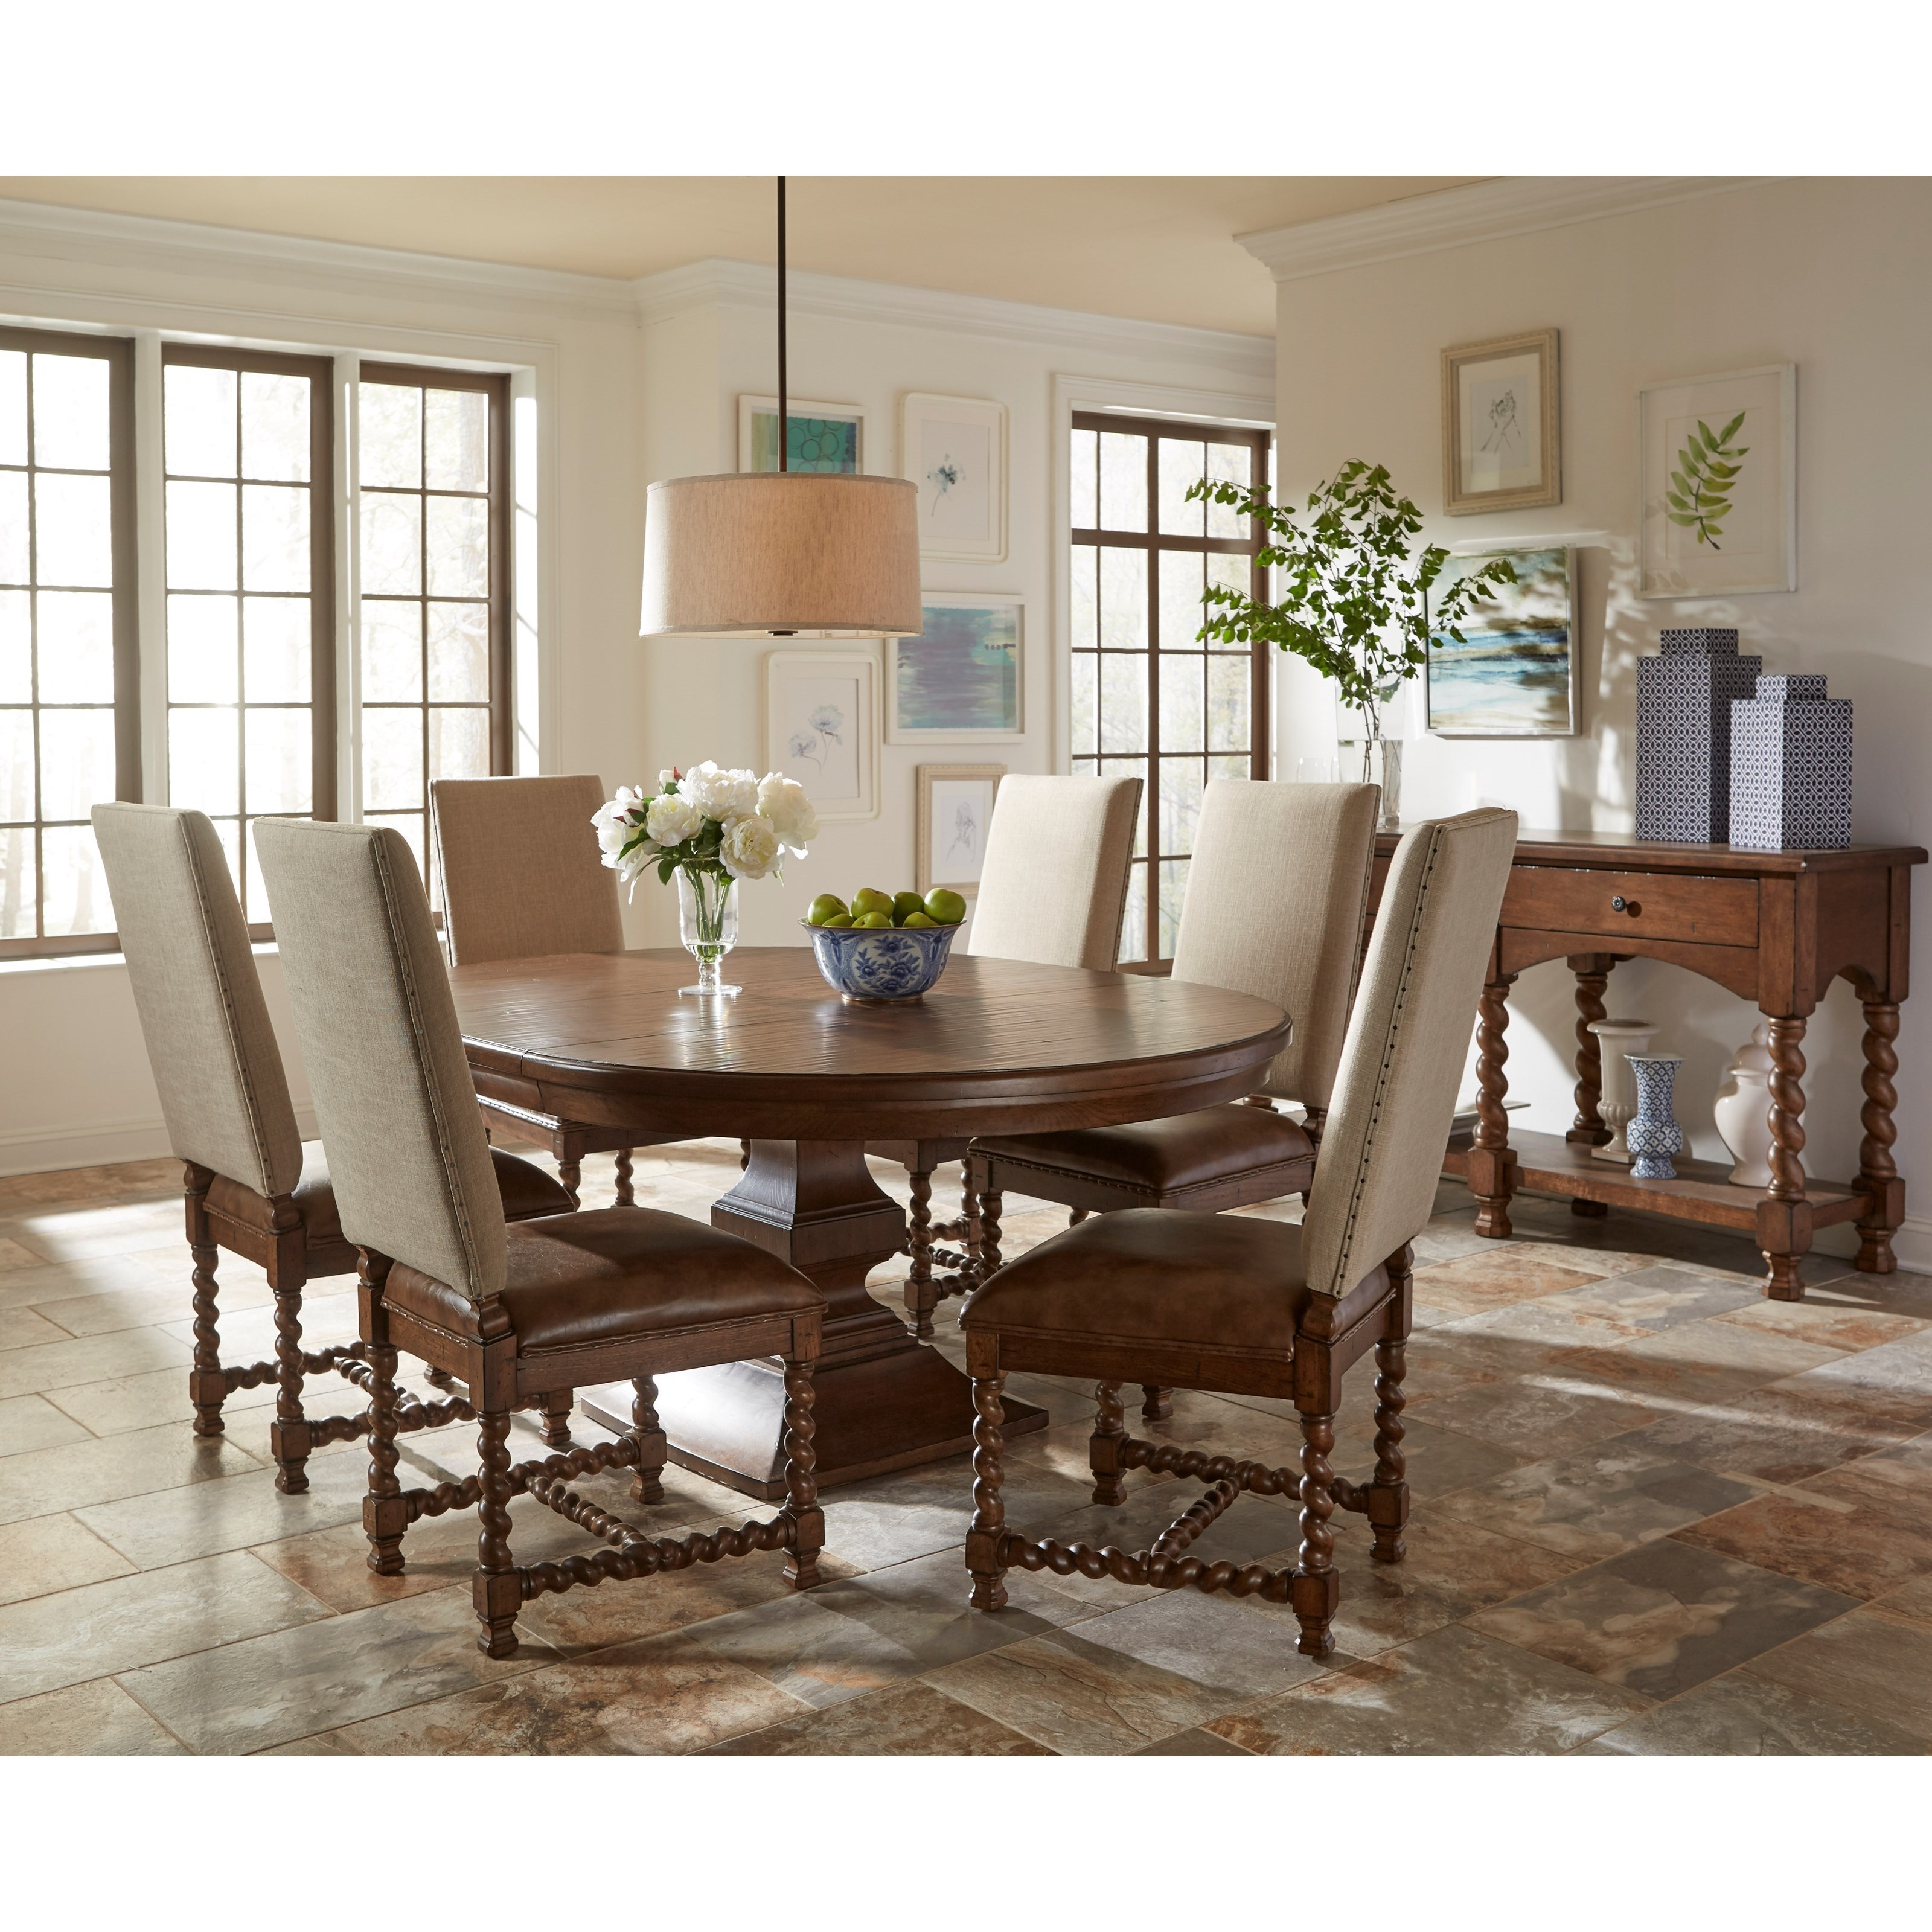 riverside furniture pembroke formal dining room group 2 riverside furniture pembroke casual dining room group